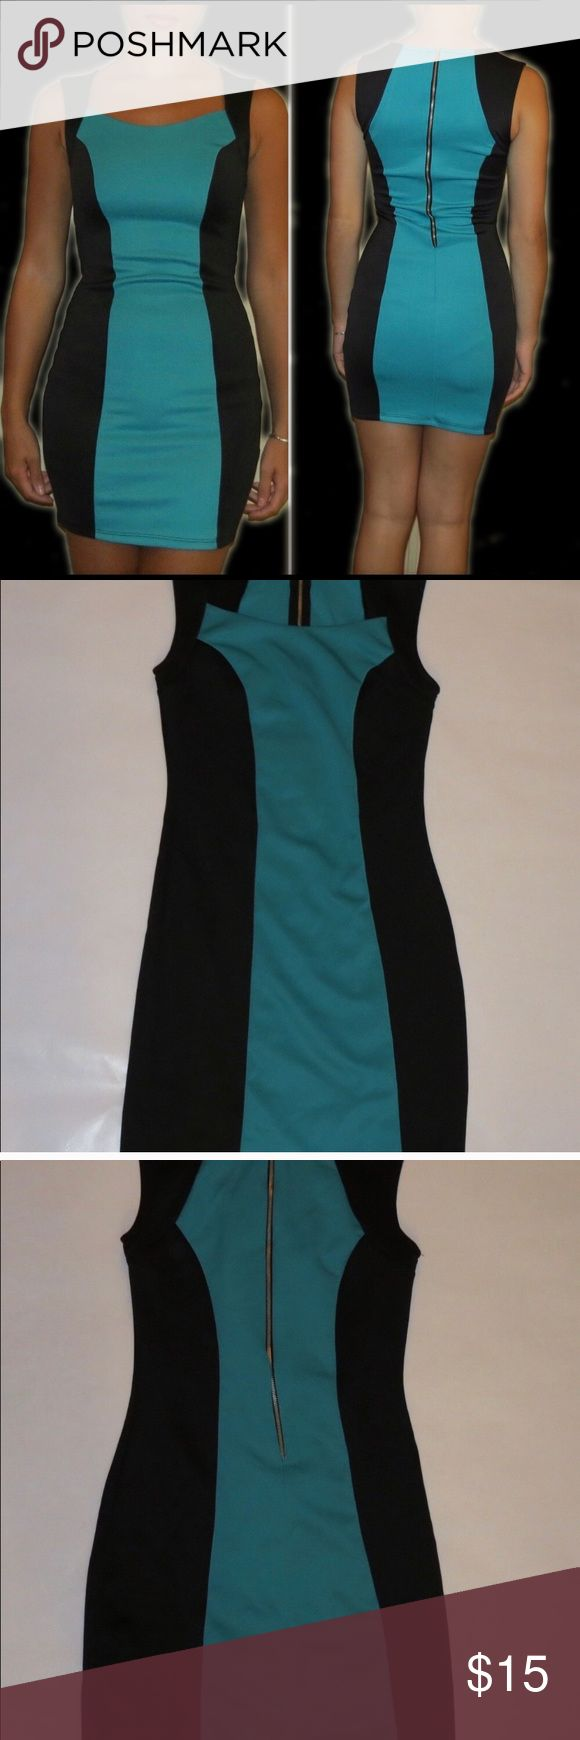 BodyCentral teal & black color Block bodycon dress Body Central- Teal & Black dress Size: Small Back gold zipper Fitted dress Worn once, machine washed, air dried.  Great condition.  ( photographed Modeled on 5'4, 120 lbs, bust 34) Body Central Dresses Mini